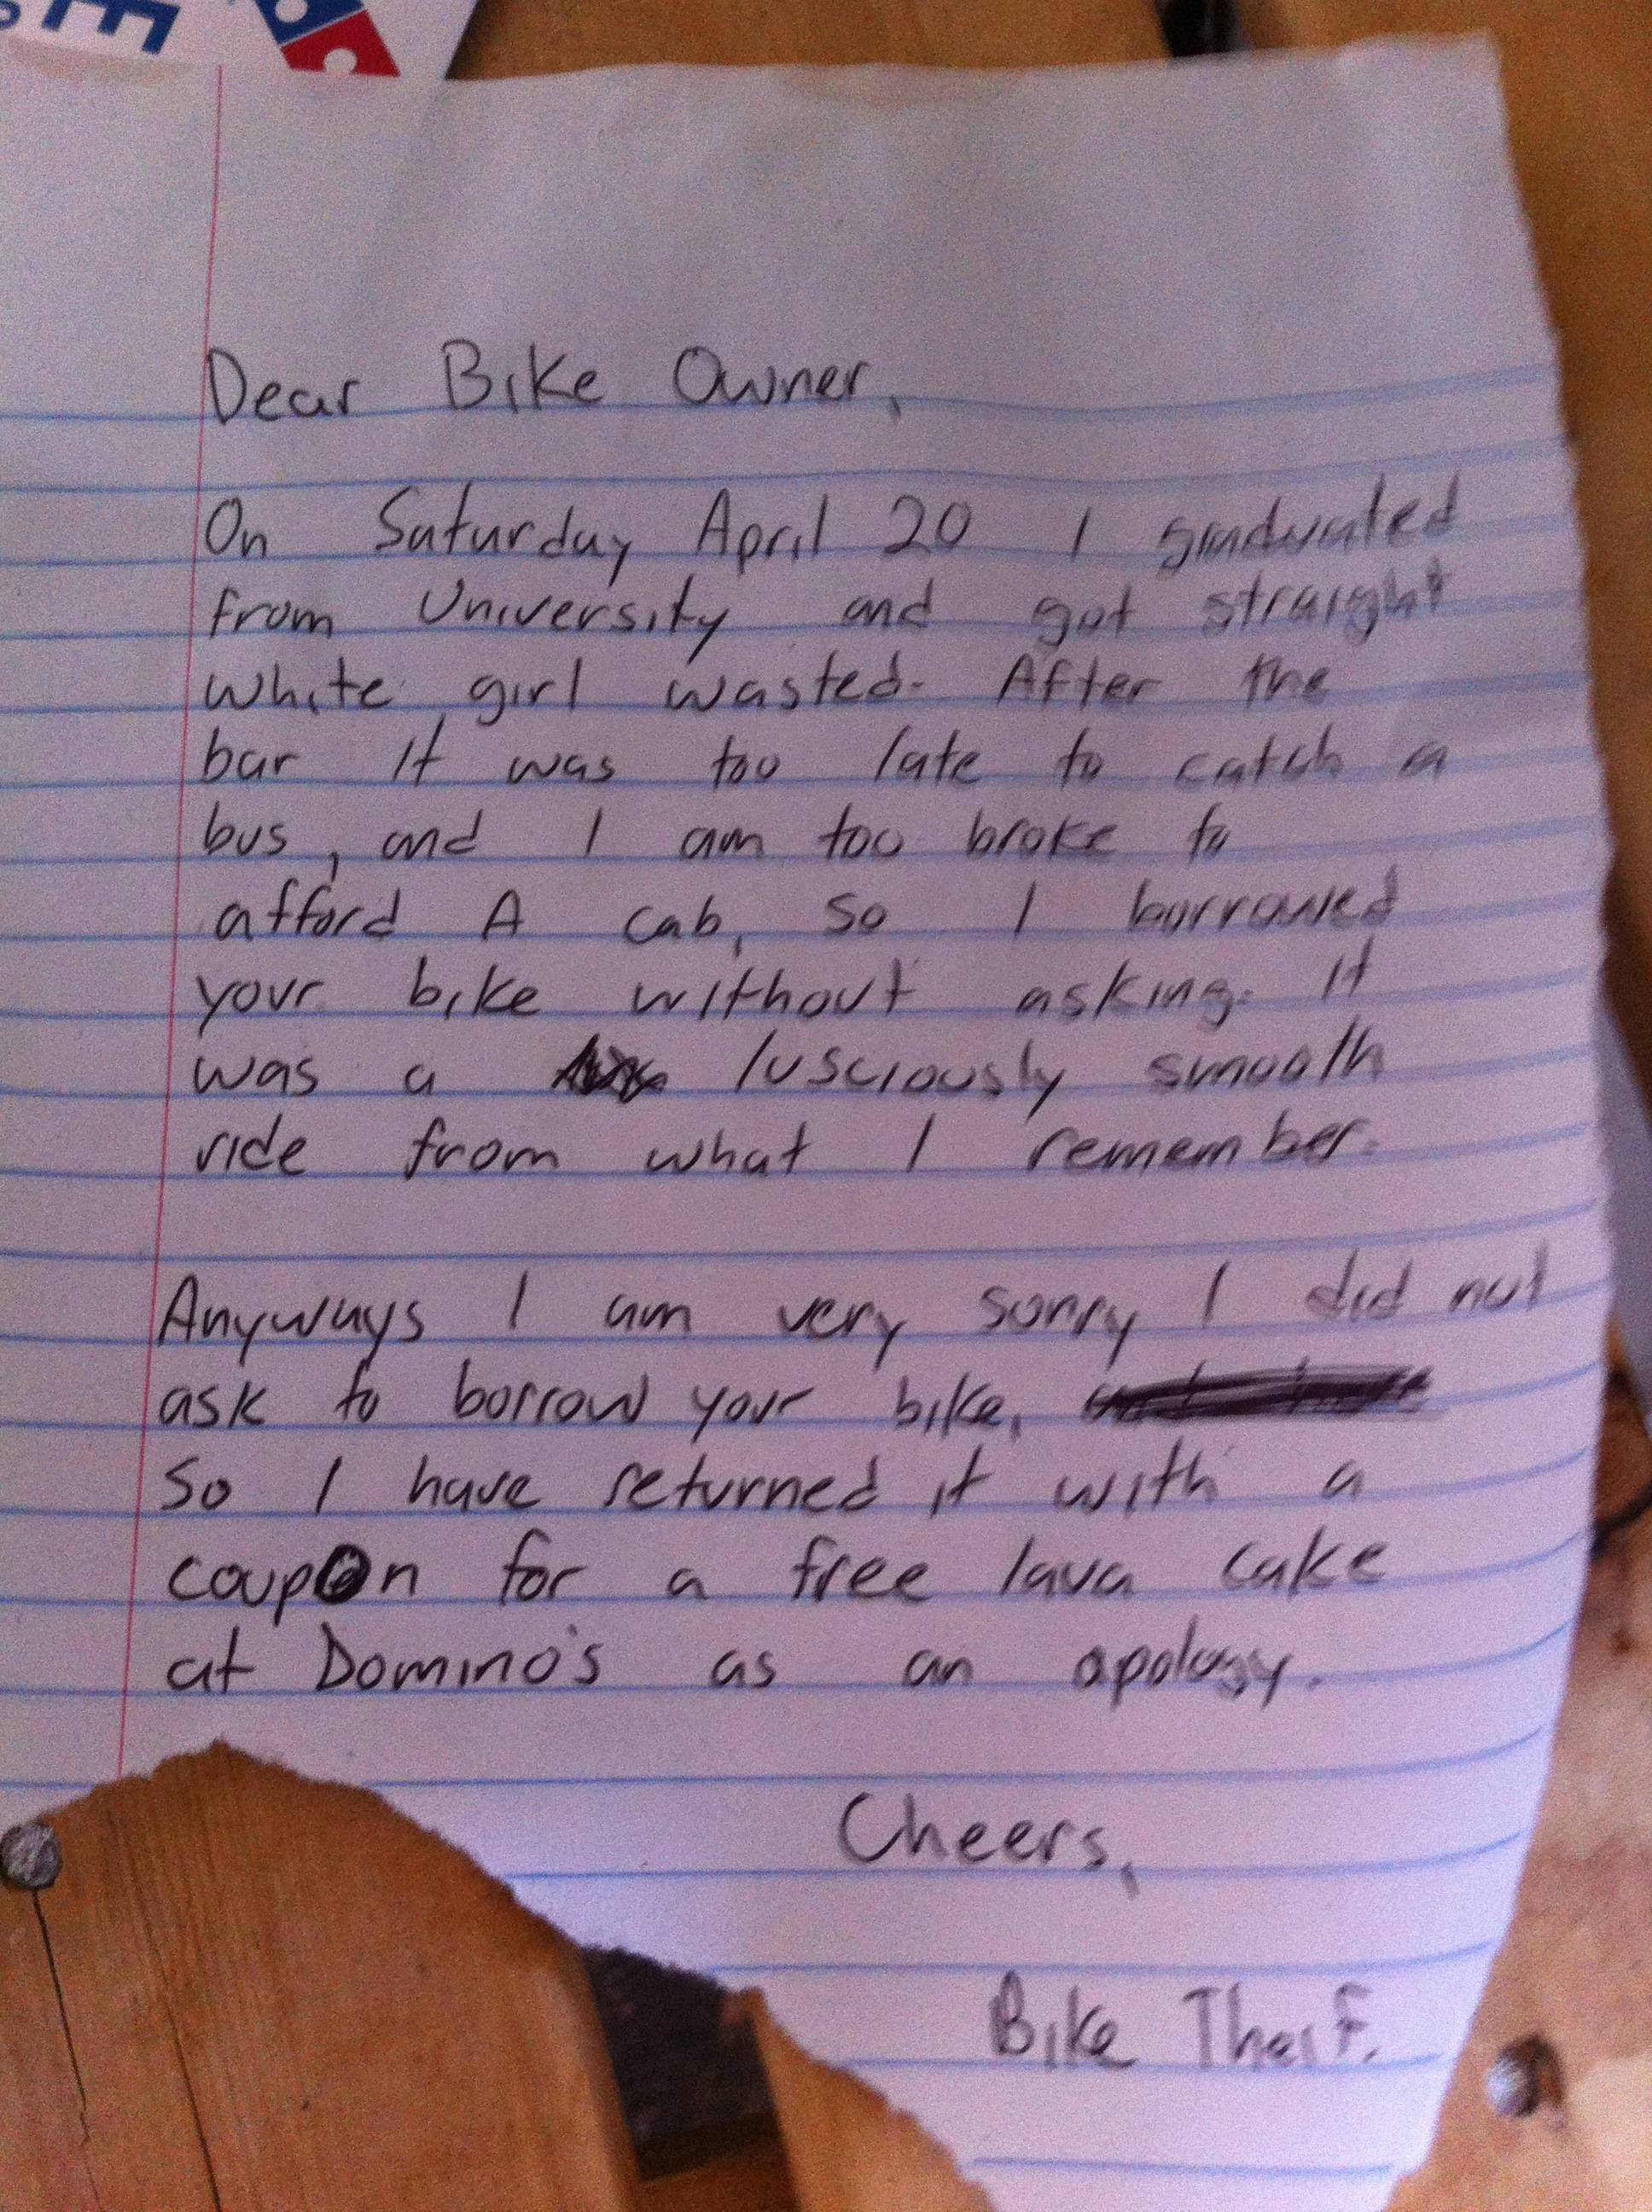 Bike Thief Returns Bike With Coupon For Free Cake Someecards Dumb